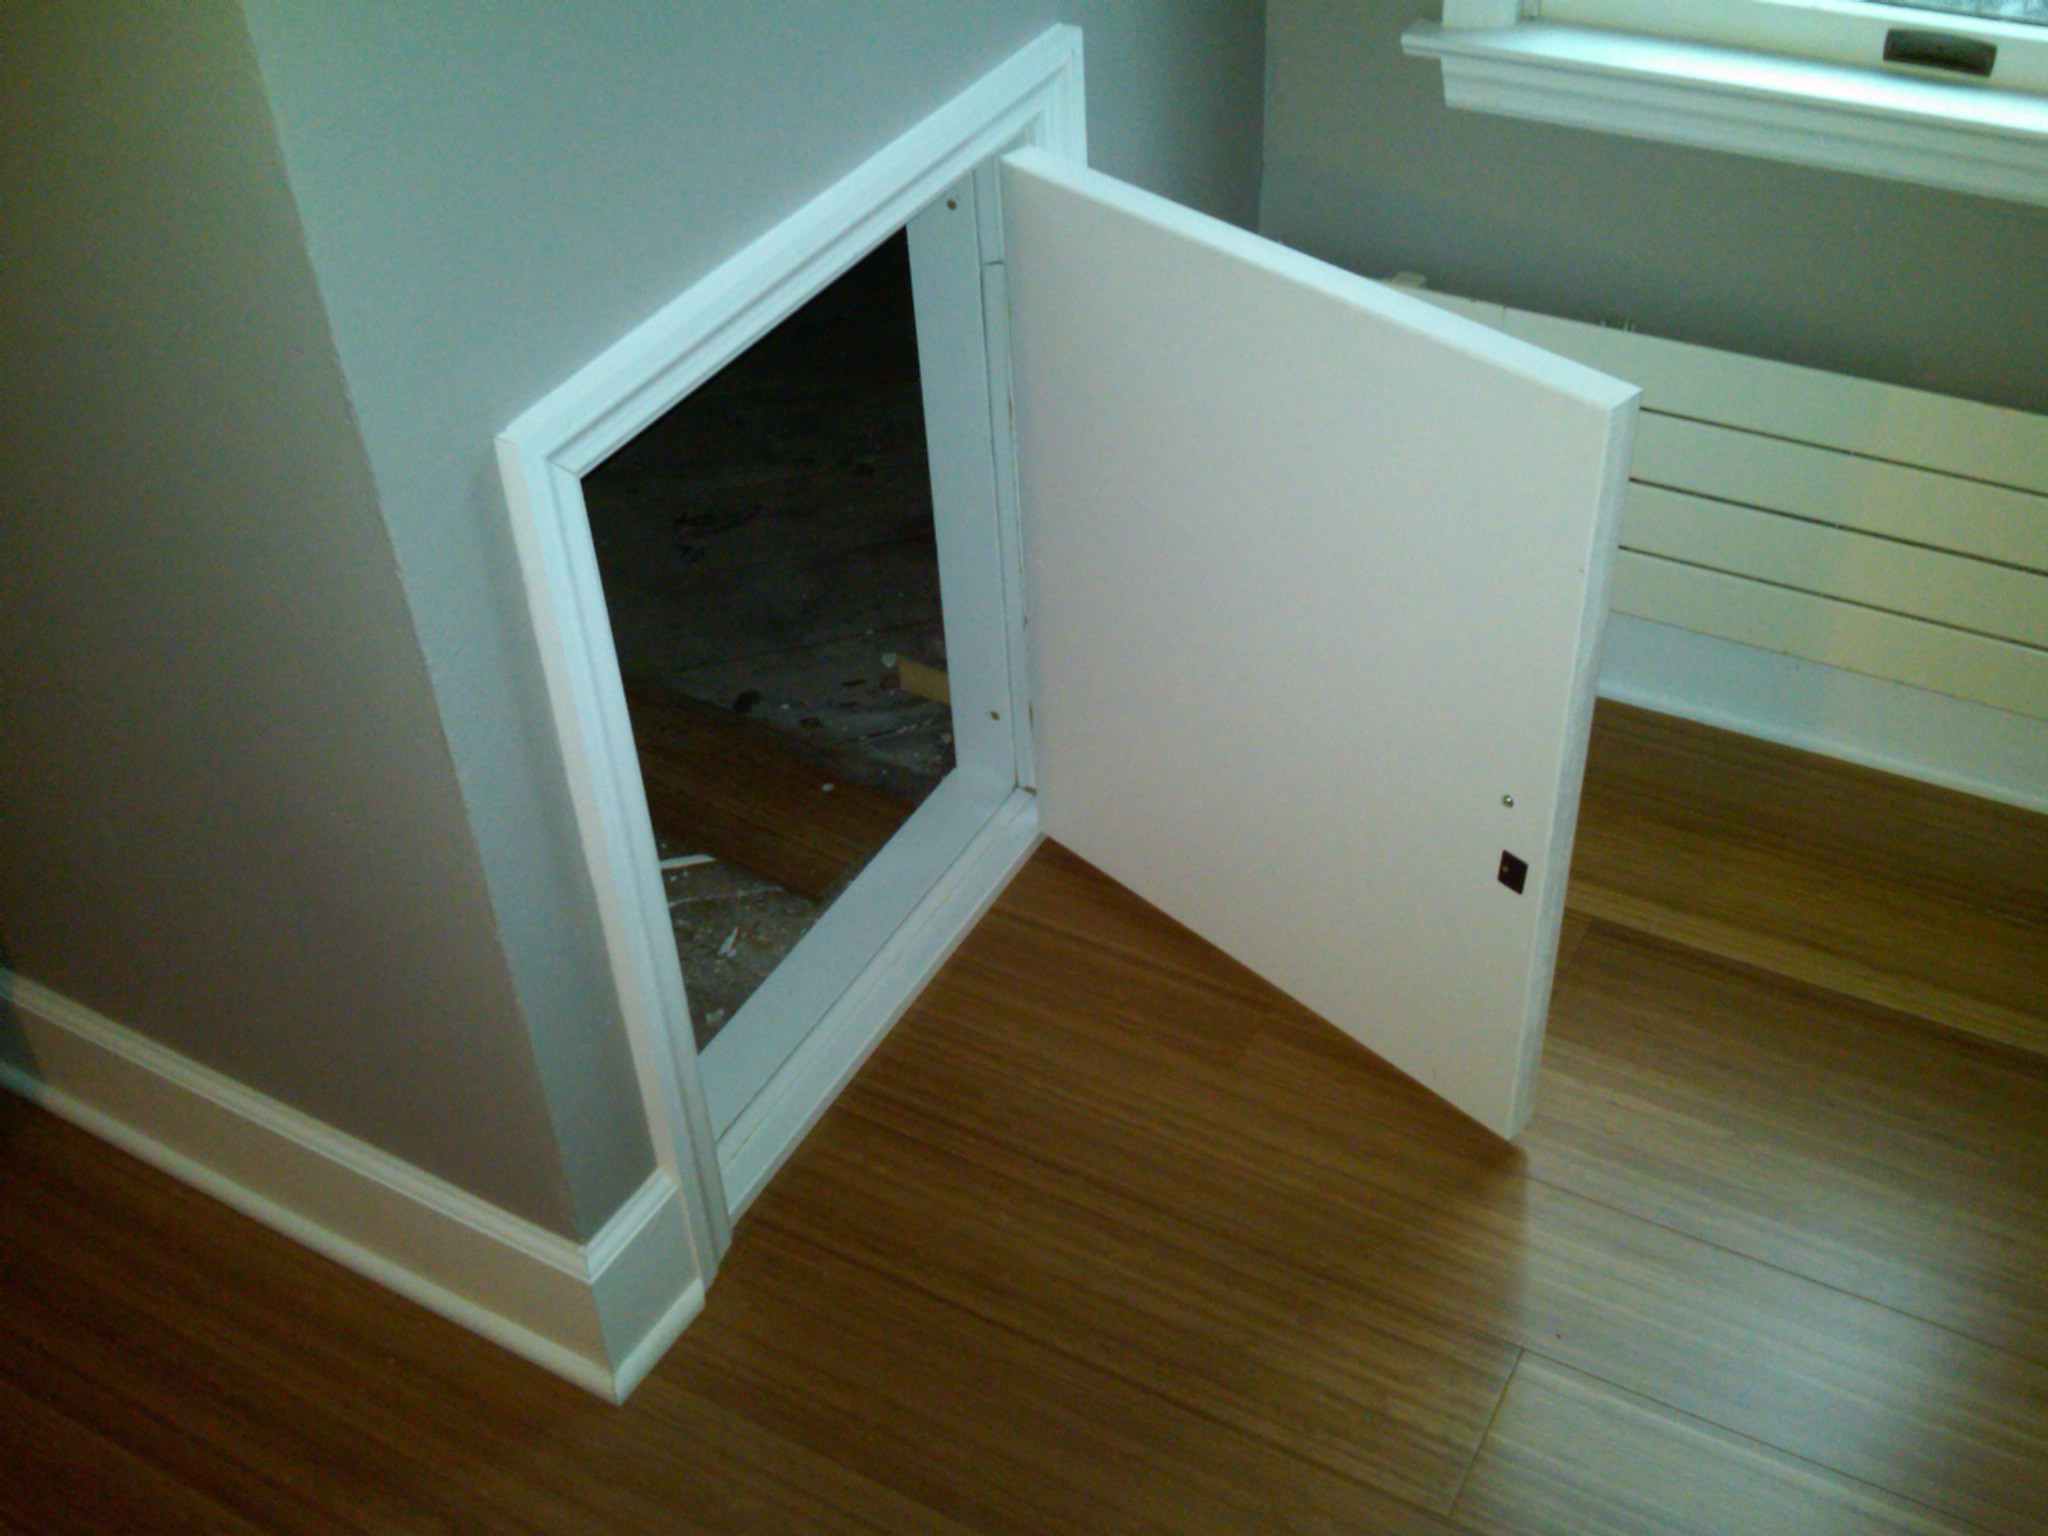 Attic Knee Wall Door Insulation Attic Ideas